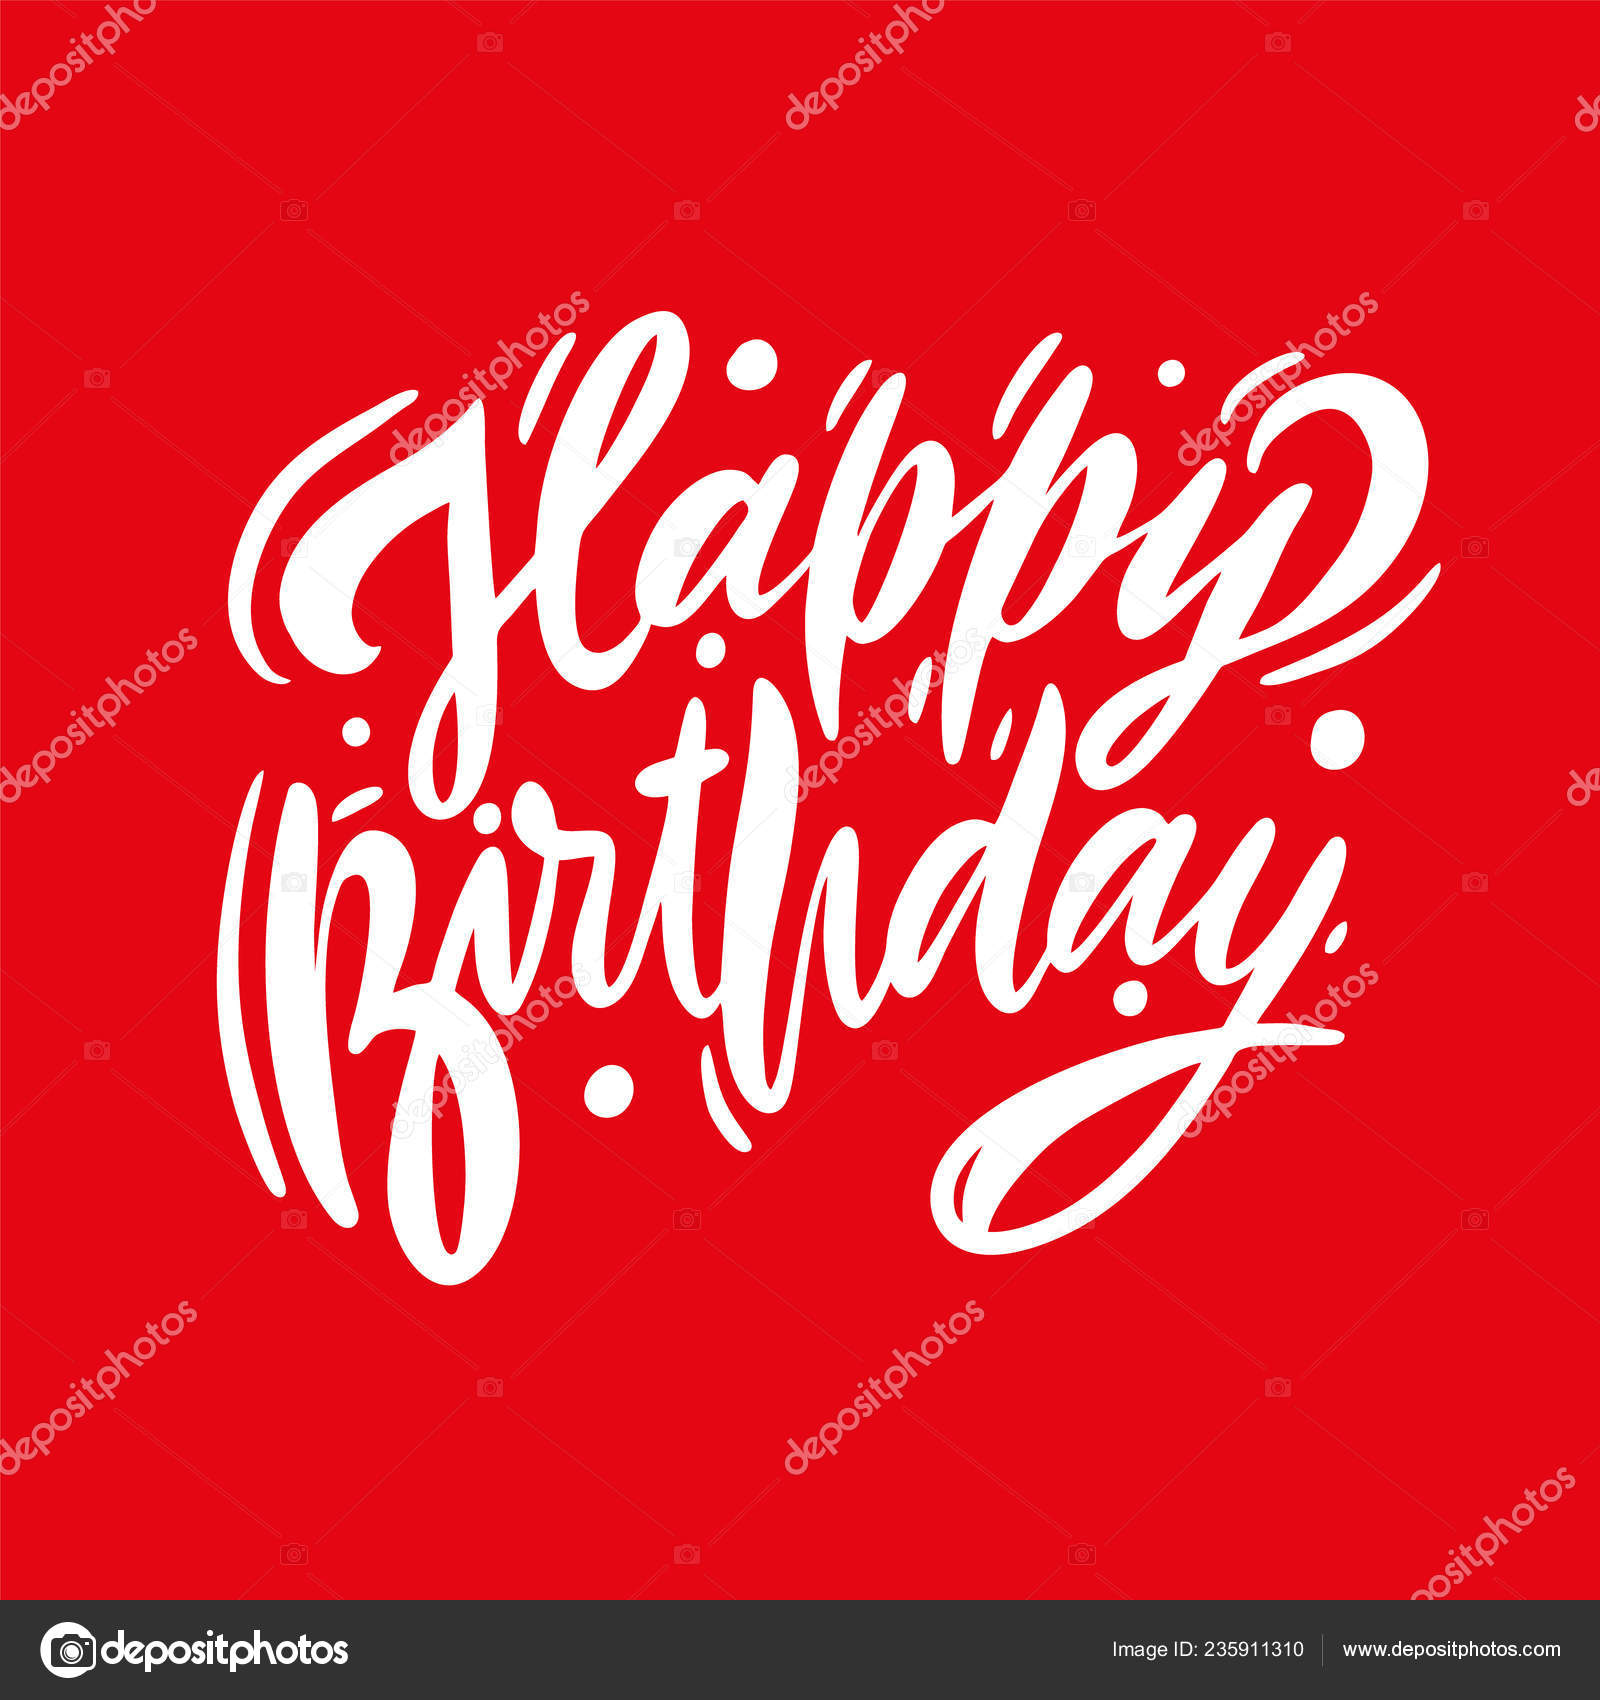 Happy Birthday Vector Lettering Modern Brush Calligraphy Isolated Red Background Stock Vector C Octyarb 235911310